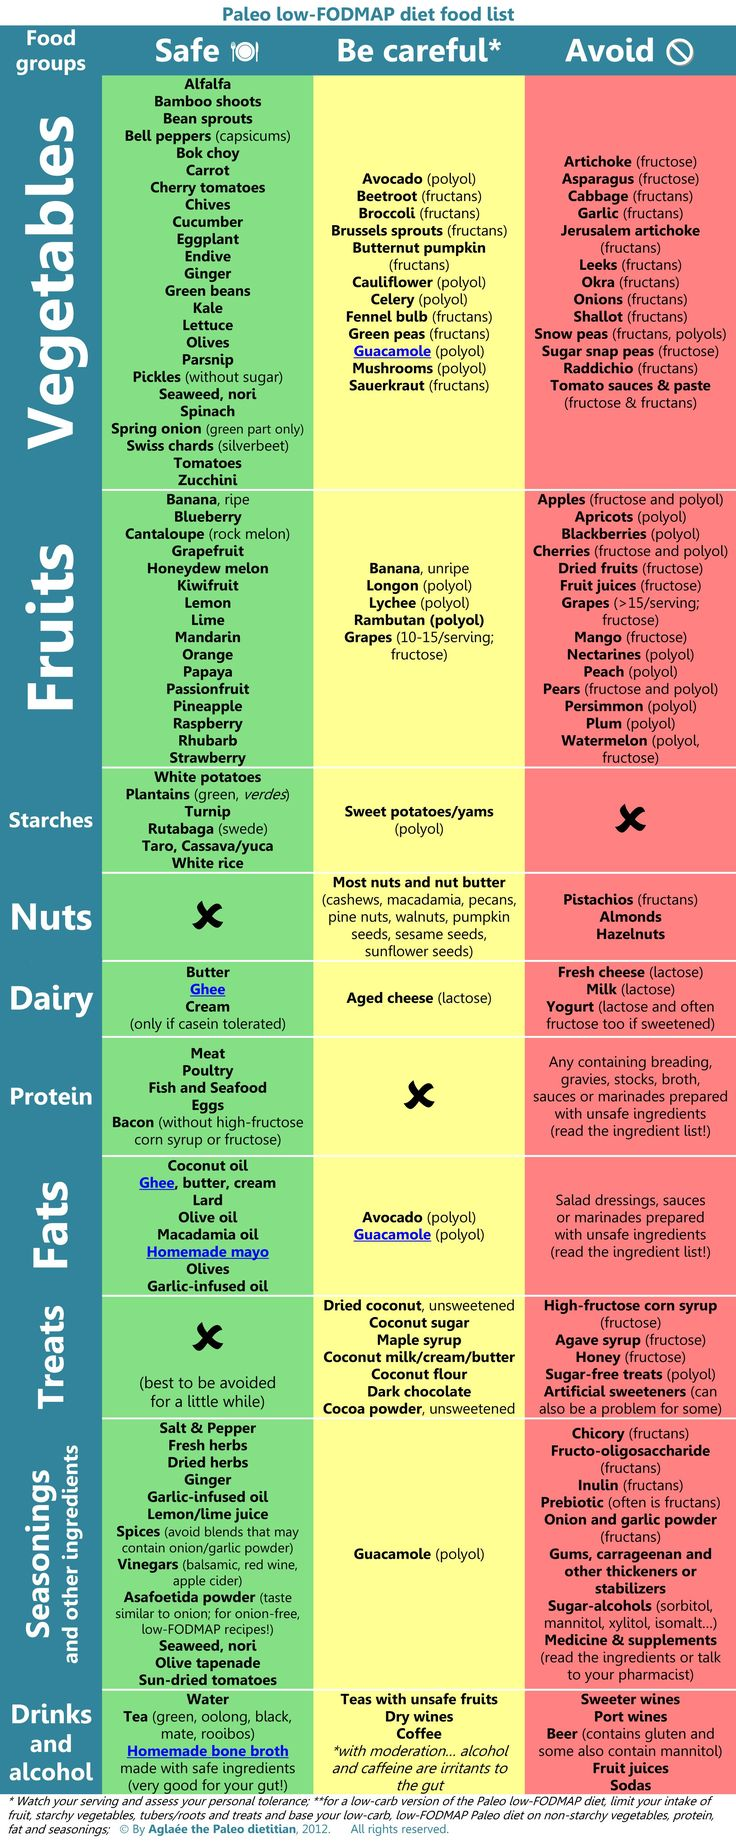 FODMAP-Table.jpg 2,295×5,742 pixels